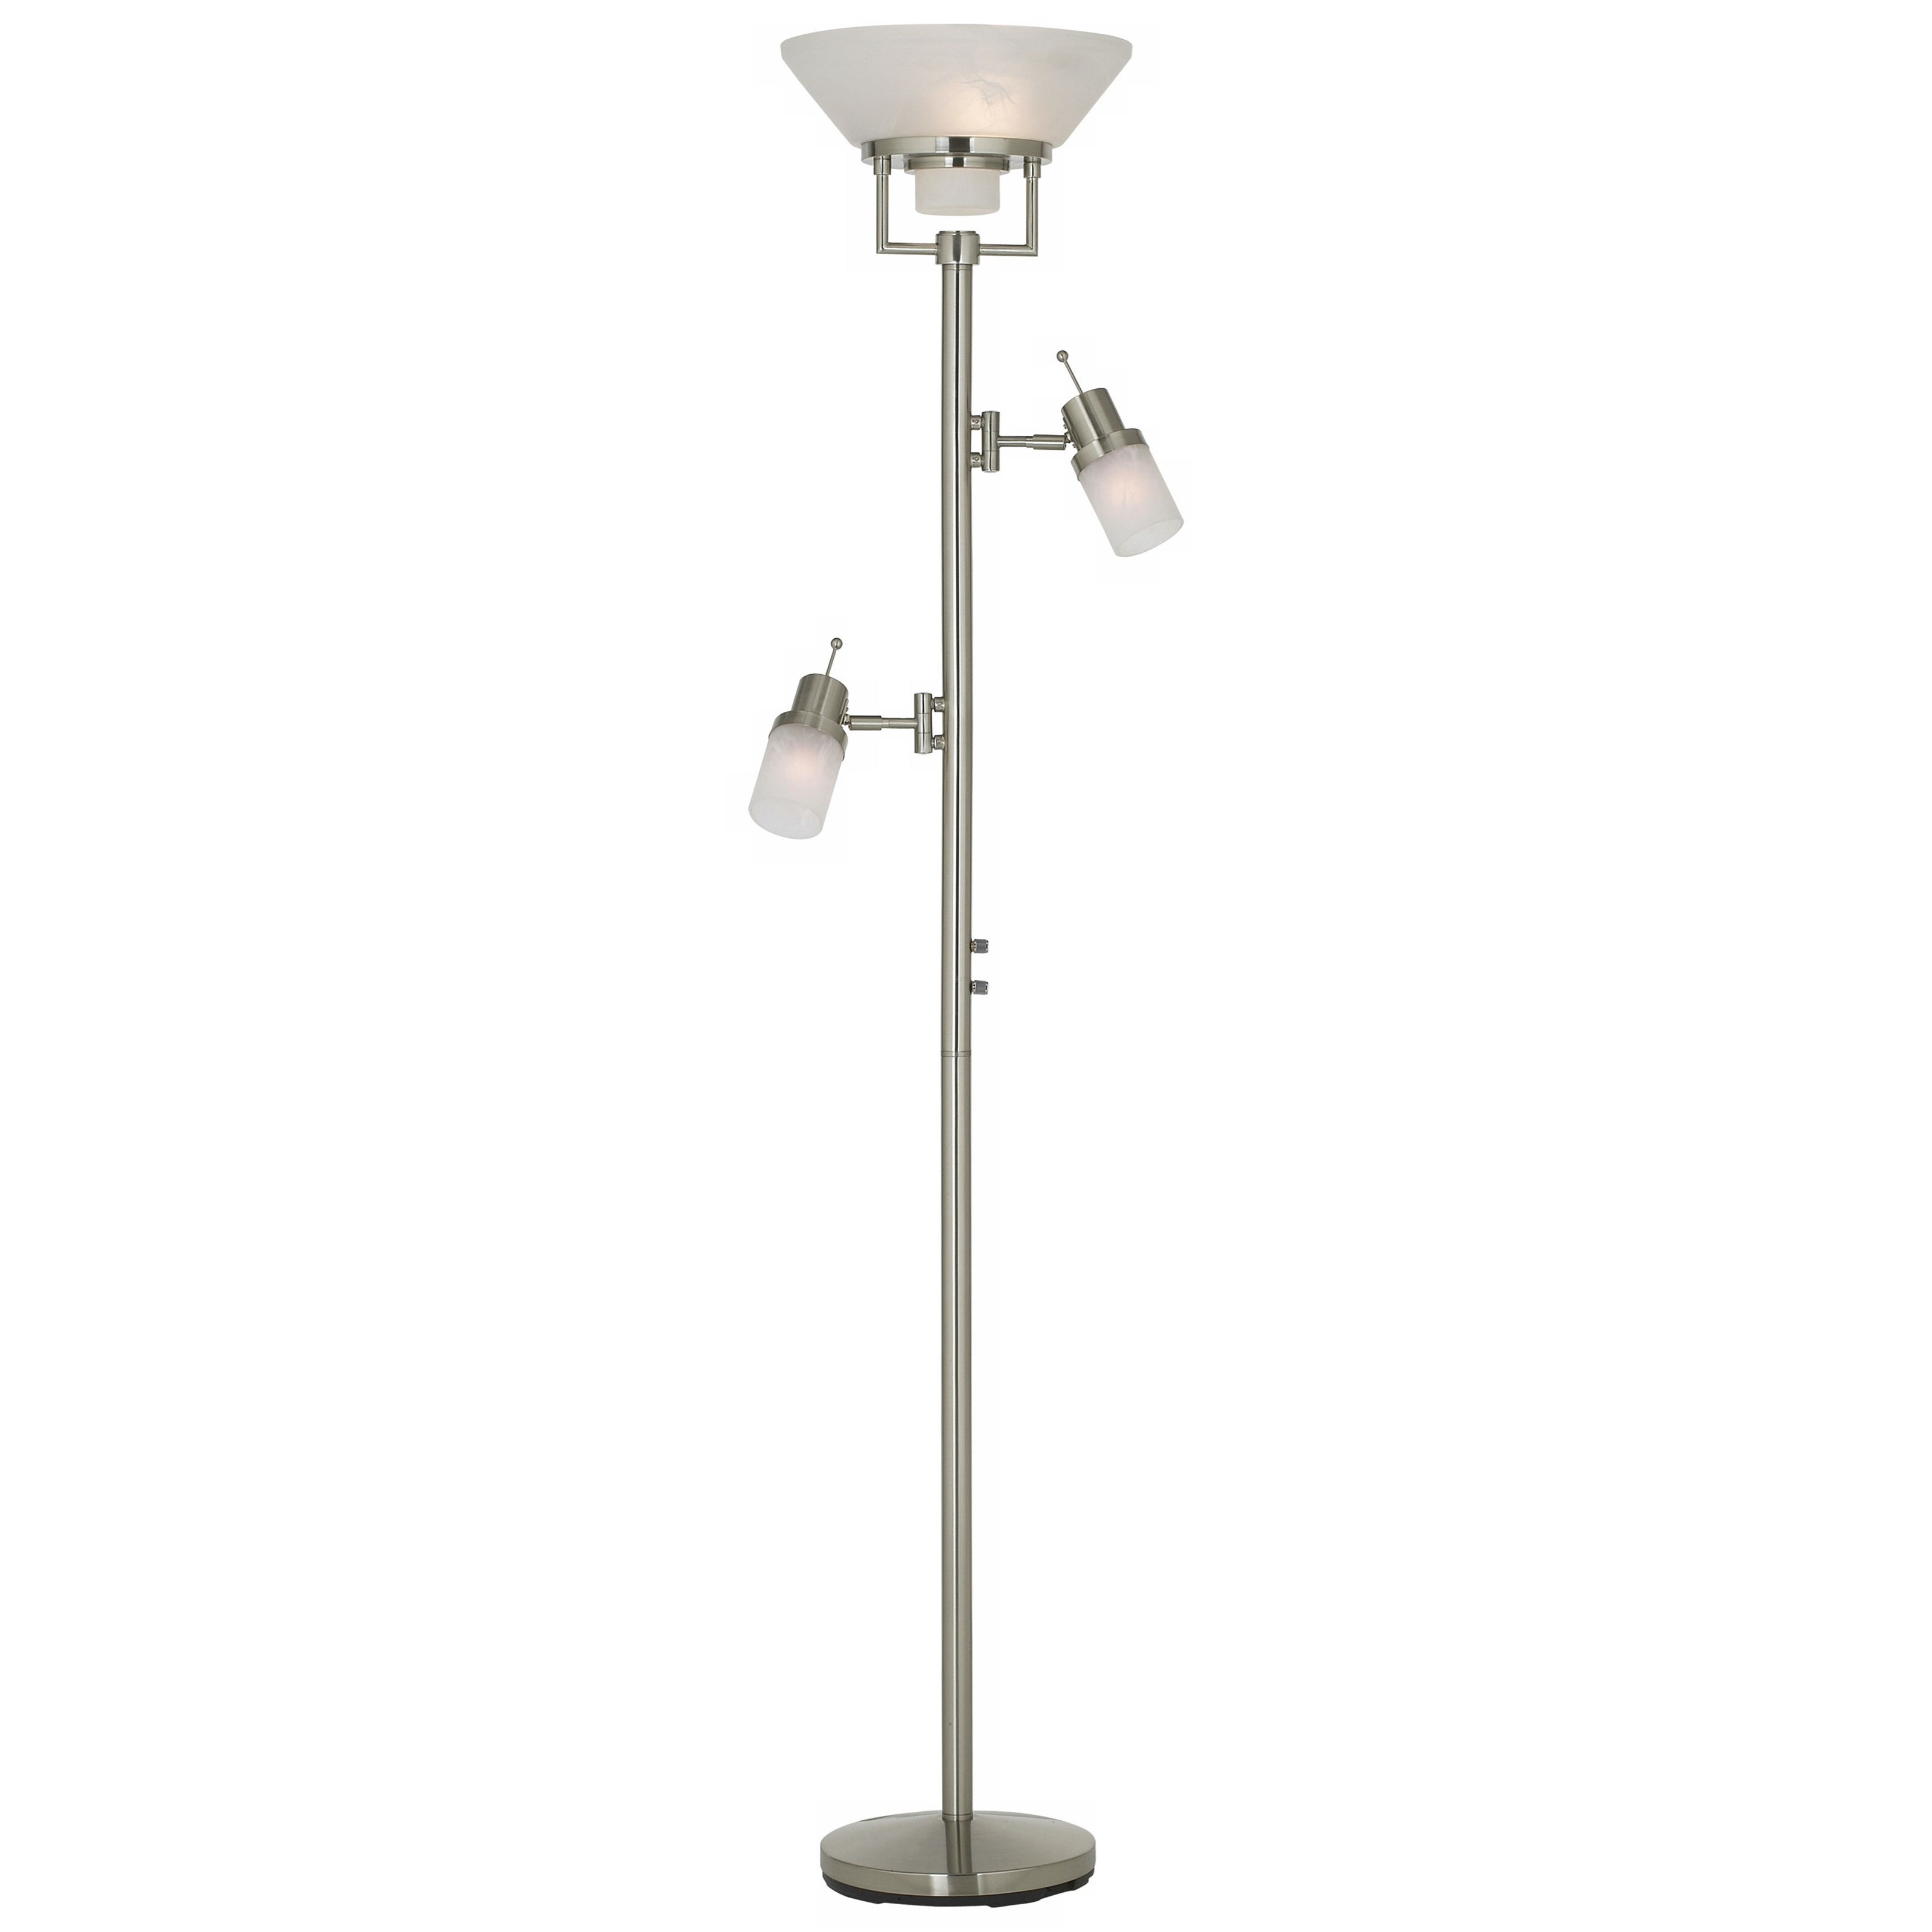 Floor Lamps Techno Chic - Nickel Torchiere by Pacific Coast Lighting at Pedigo Furniture